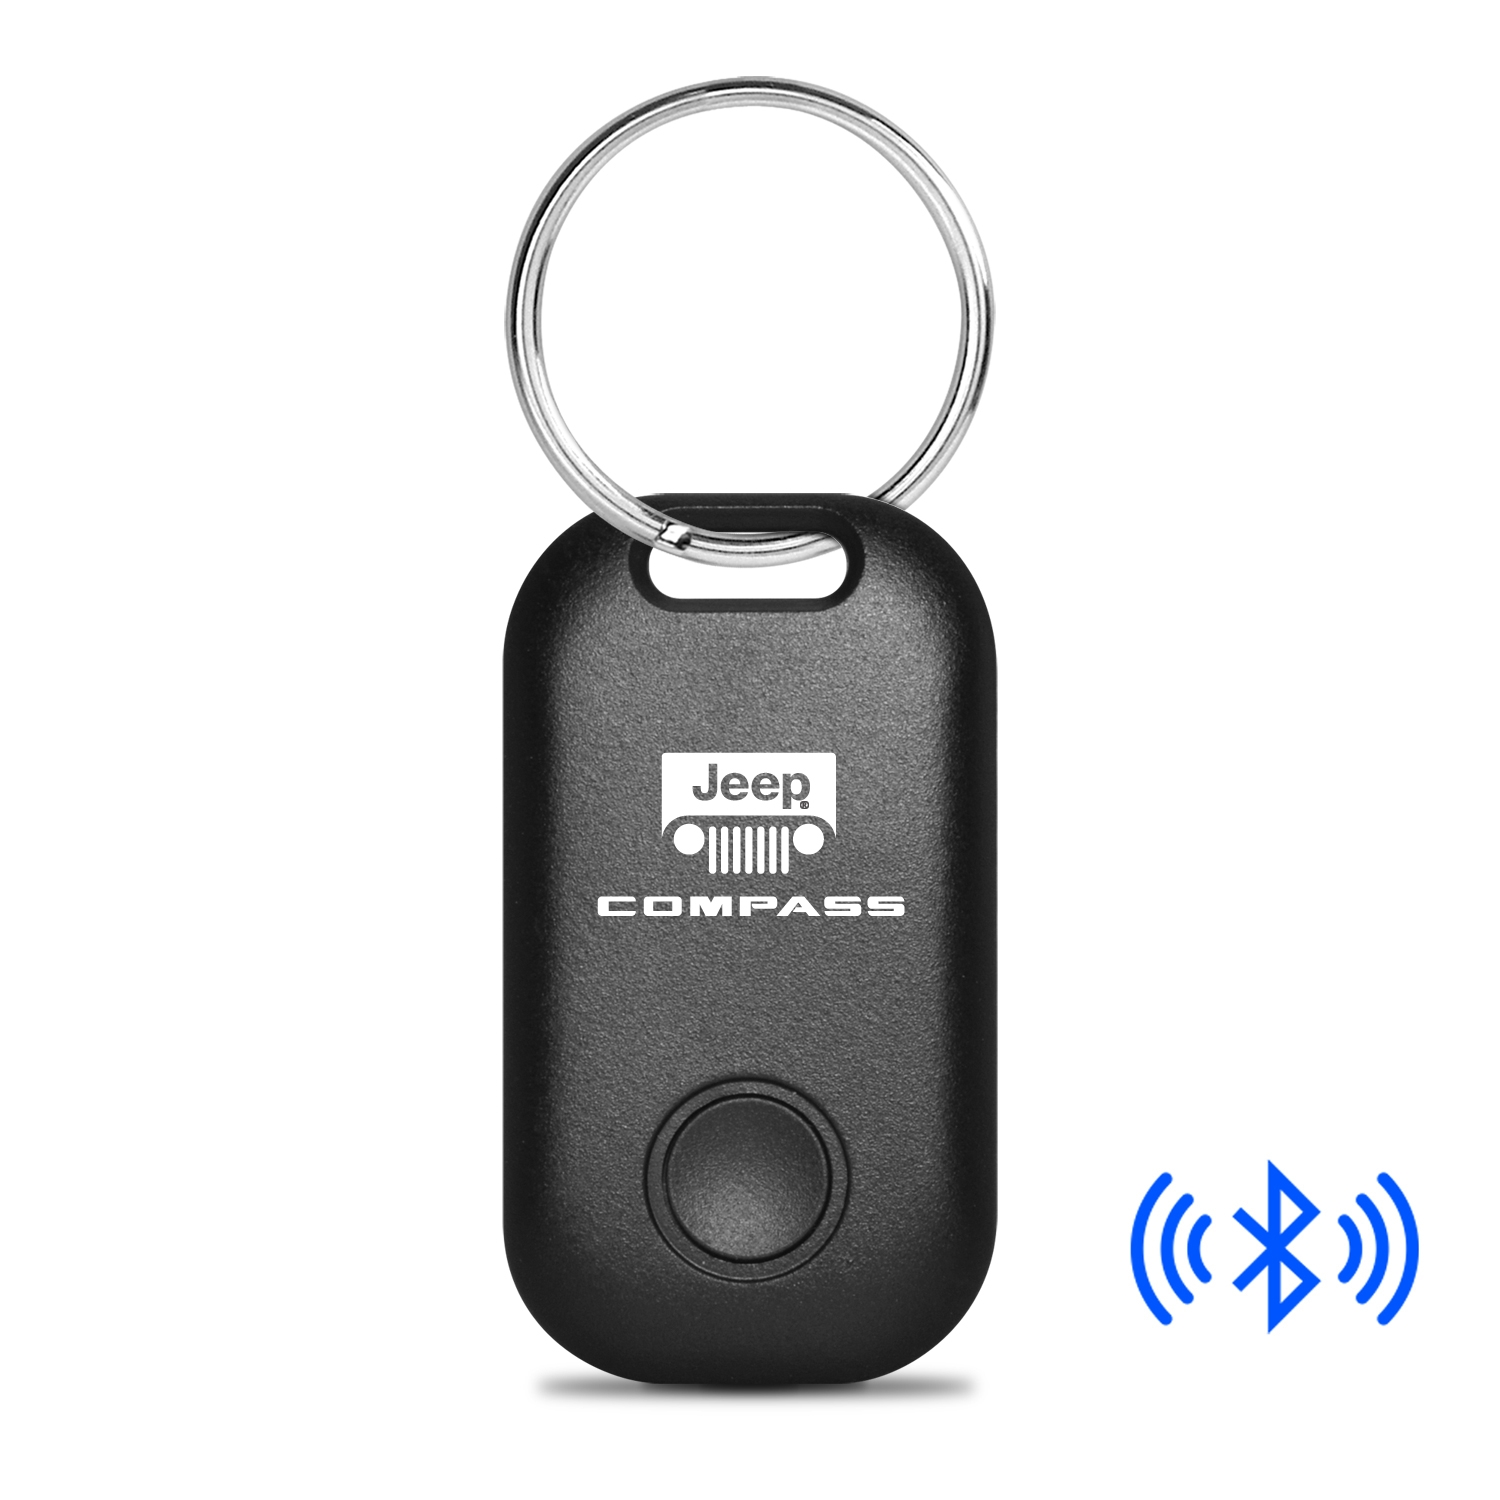 Jeep Compass Bluetooth Smart Key Finder Black Key Chain